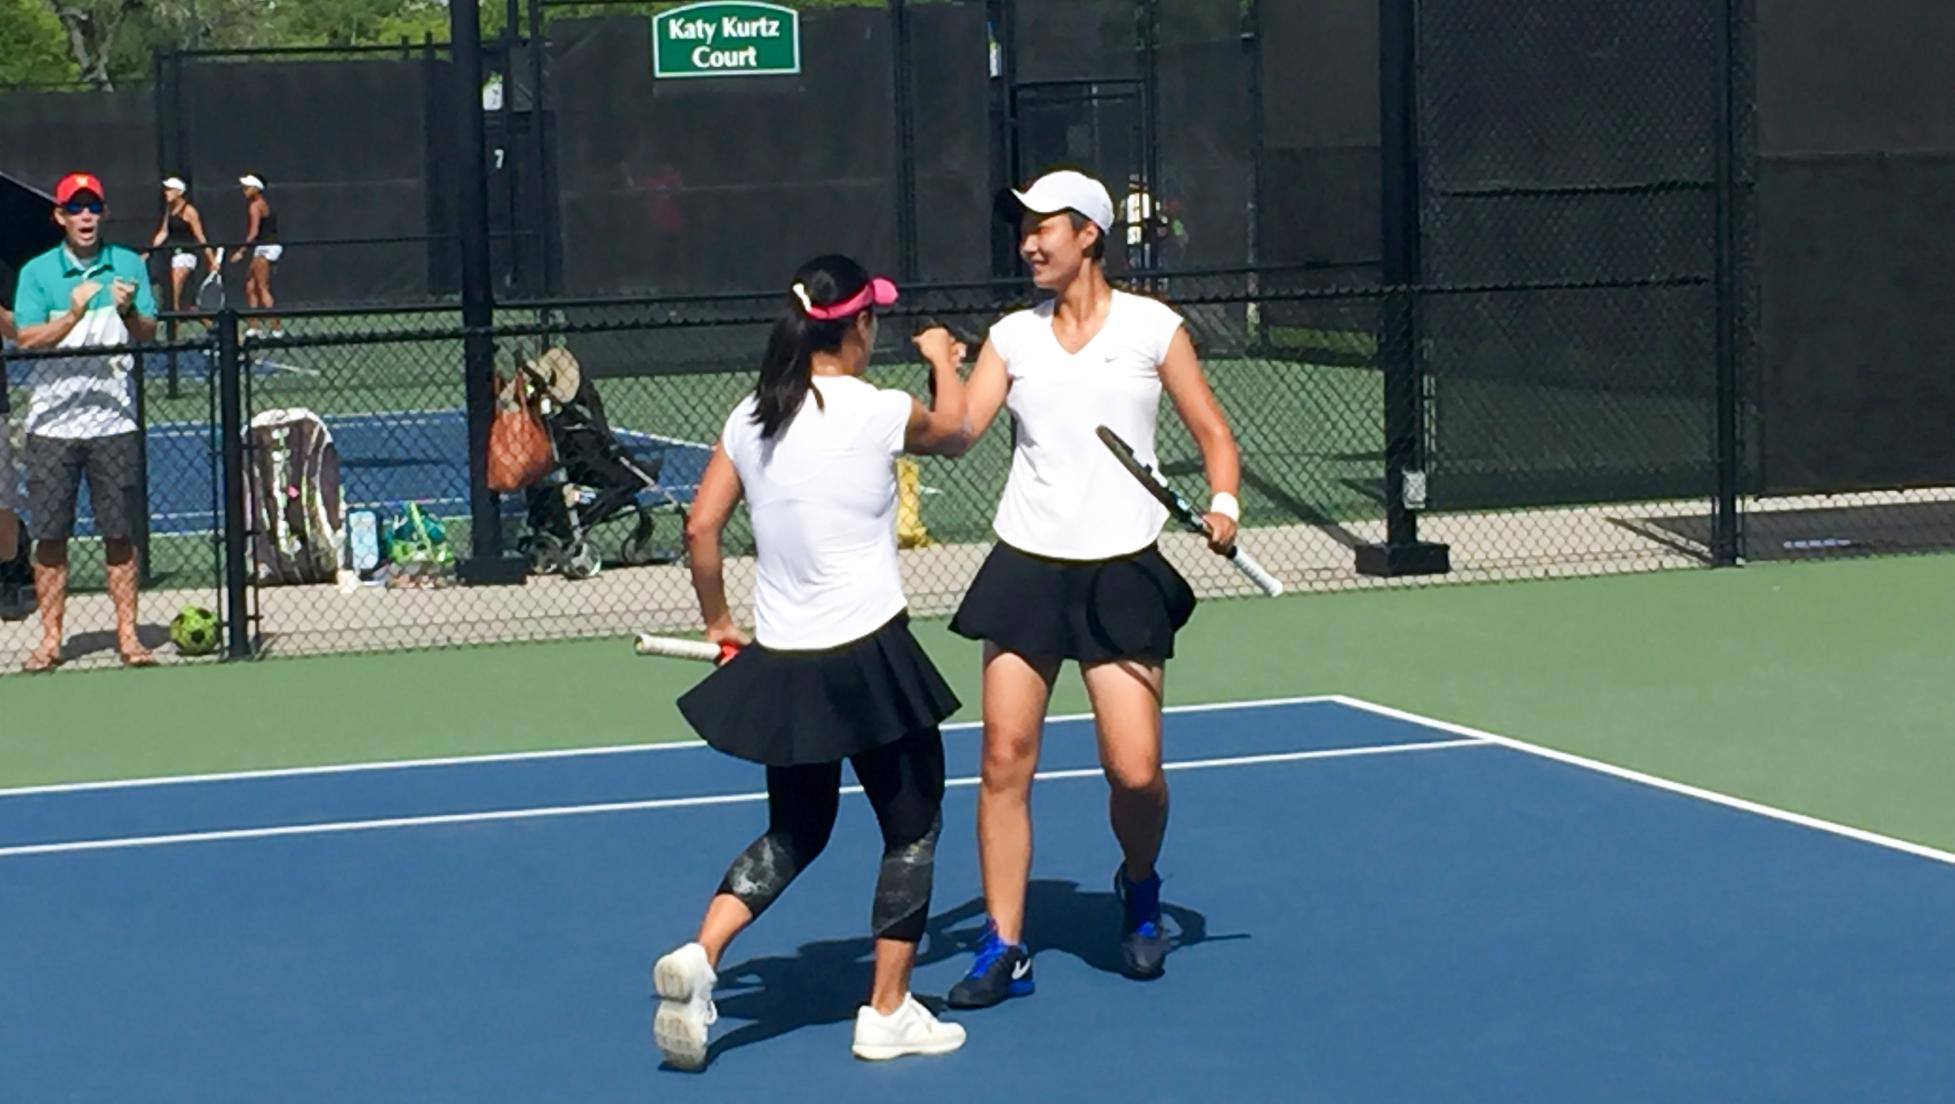 No. 1 doubles team Xin (Summer) Wen and Nannan (Dallas) Zhang remained undefeated with an 8-3 victory for the Seasiders.